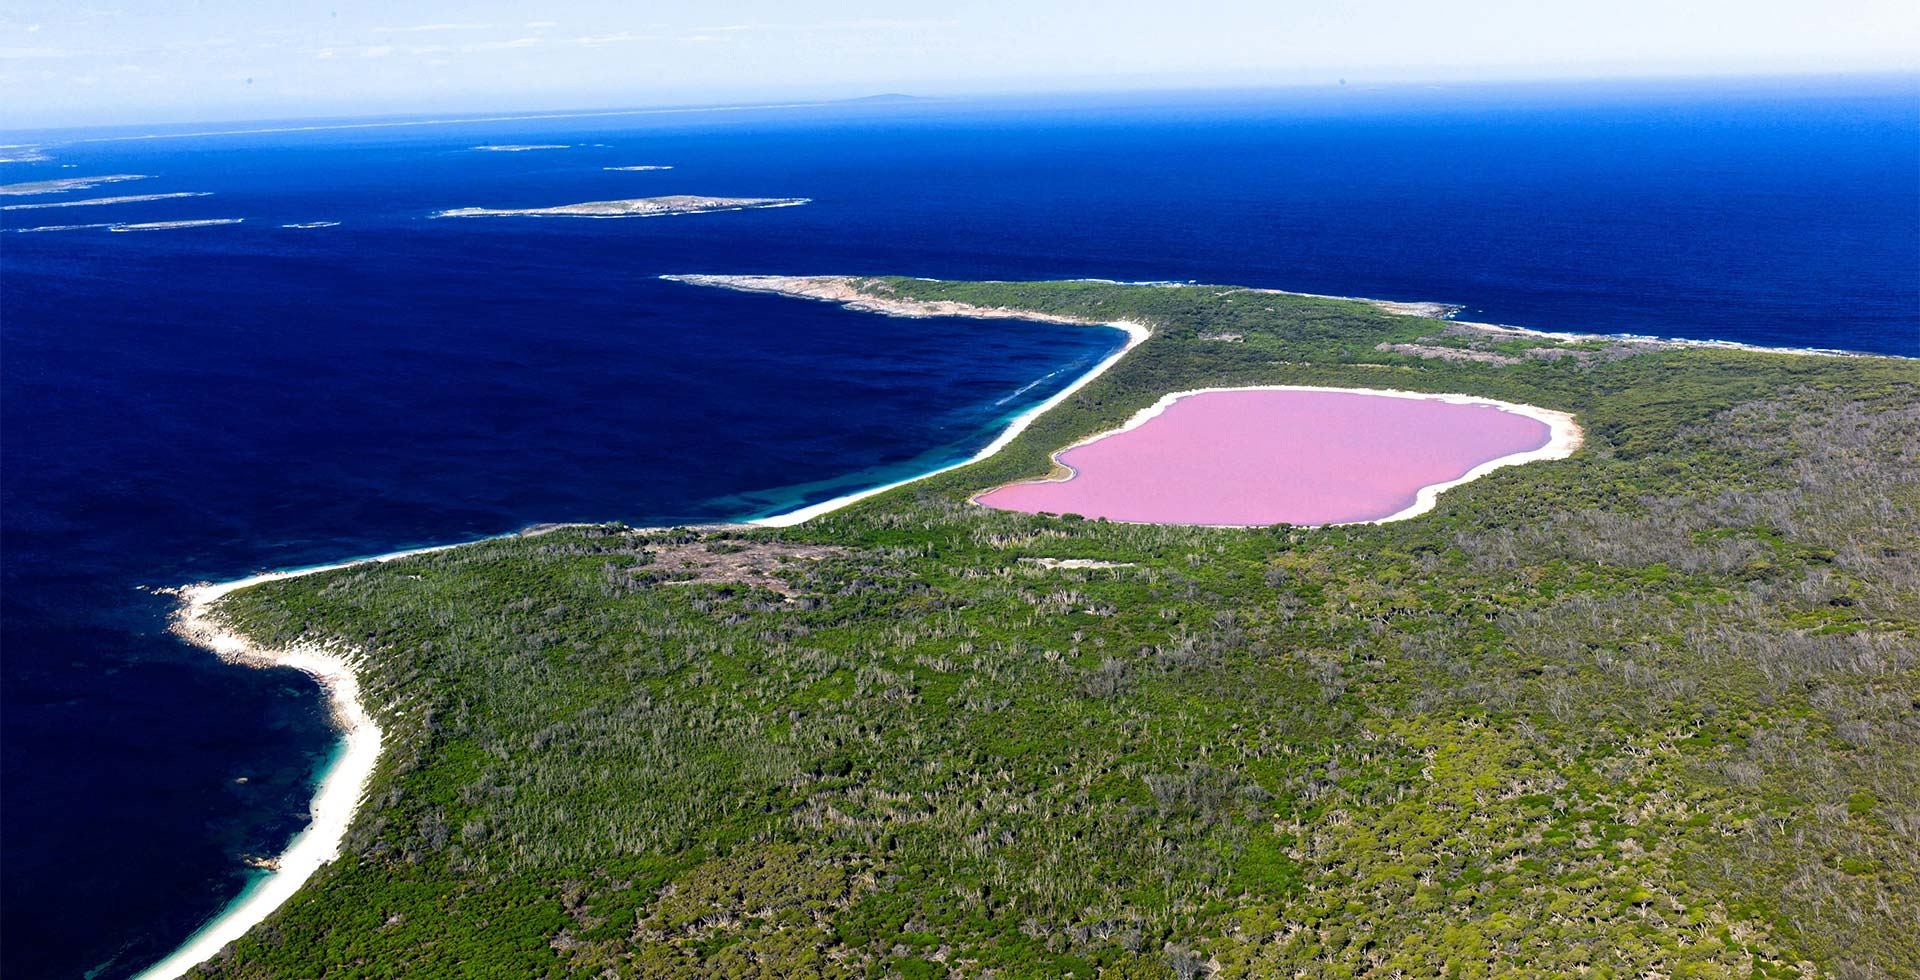 Experience the pink waters of Lake Hillier, Esperance